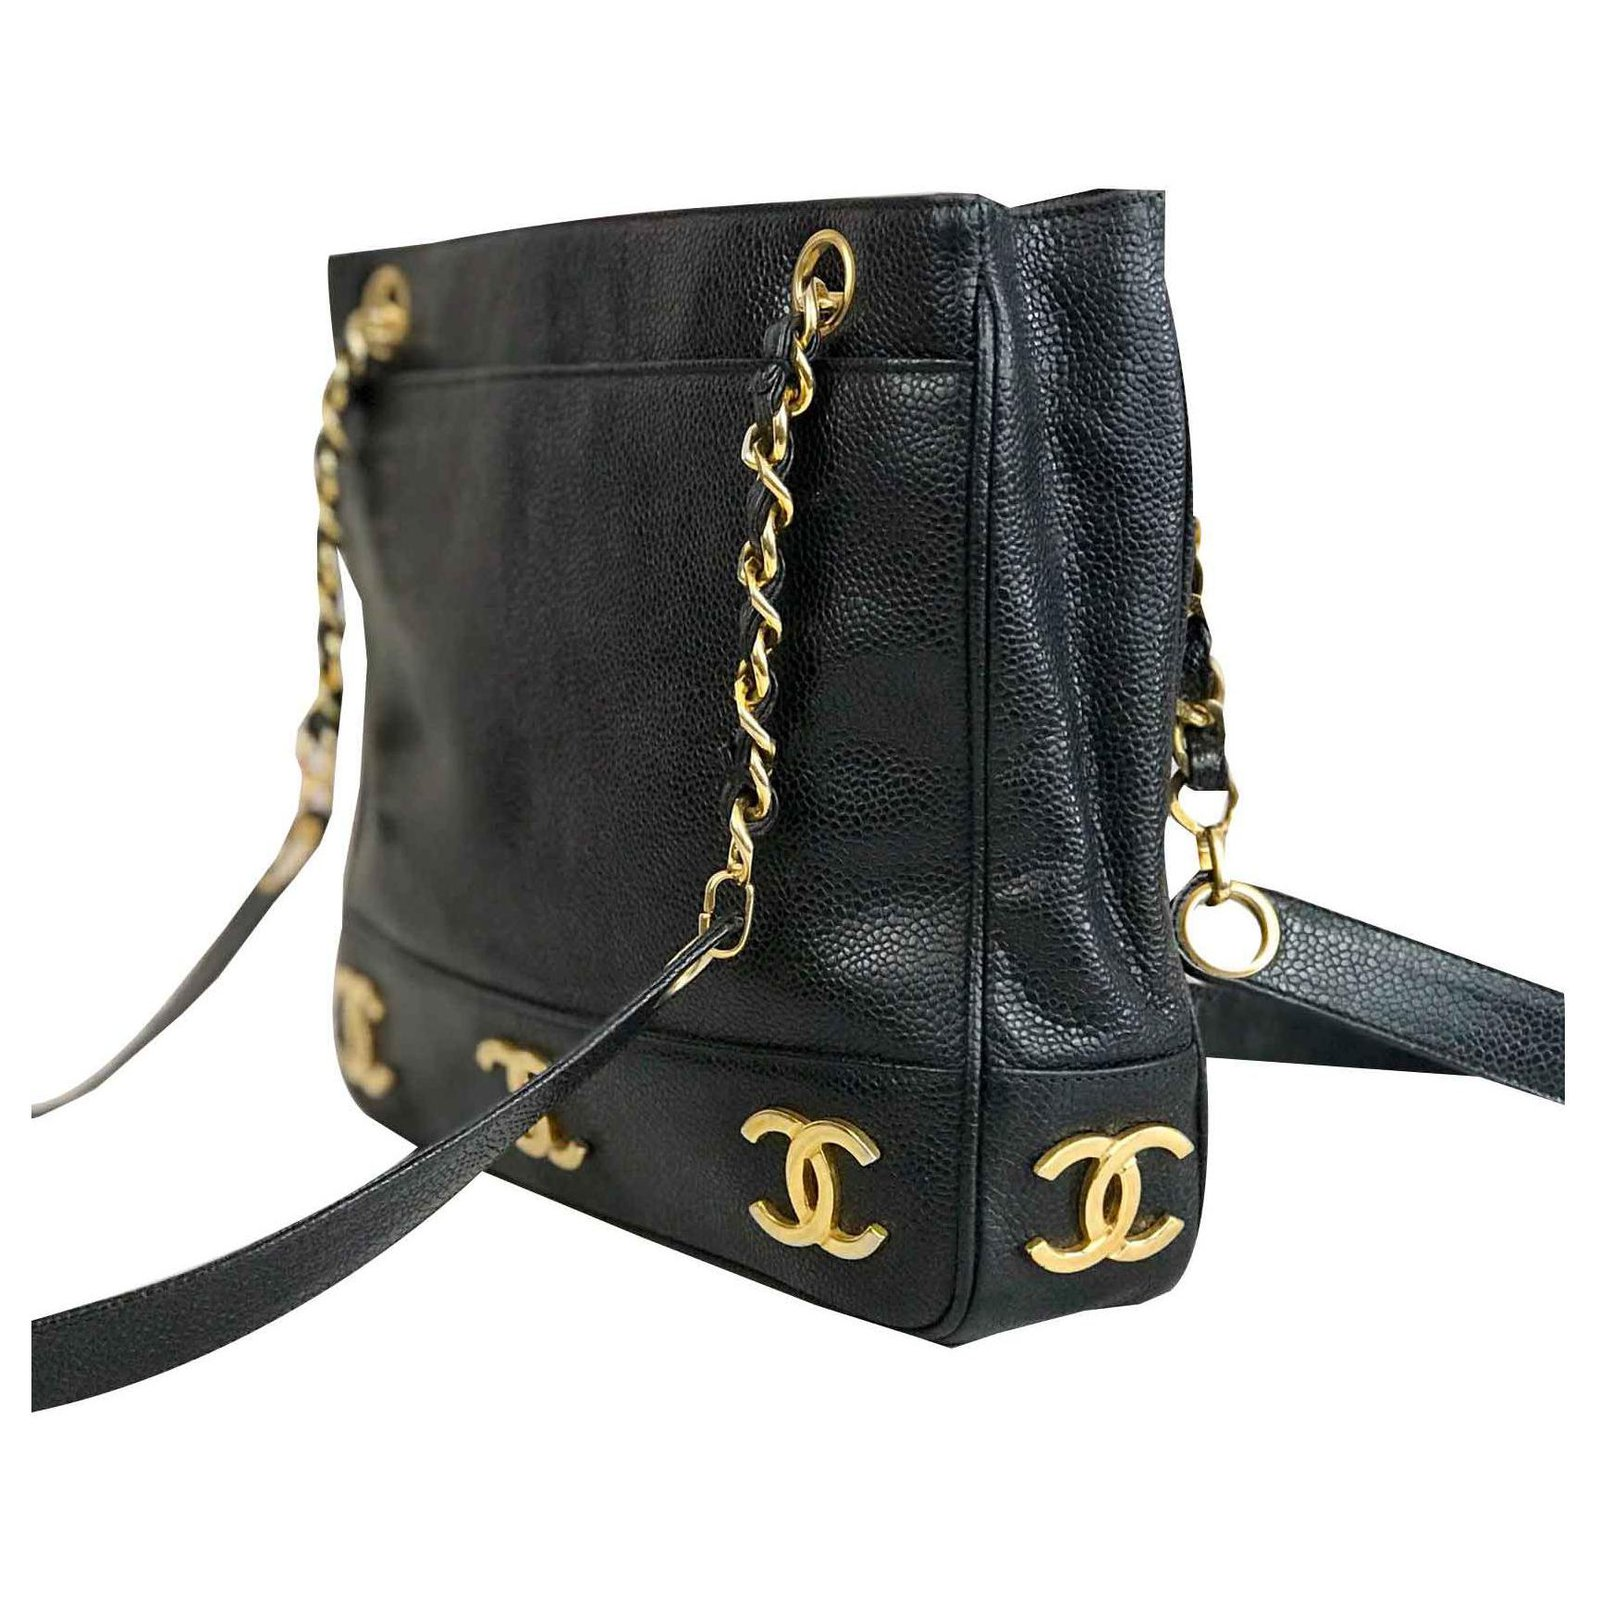 477df2581daf Chanel Chanel bag in Caviar leather and golden markings Handbags Leather  Black ref.123689 - Joli Closet